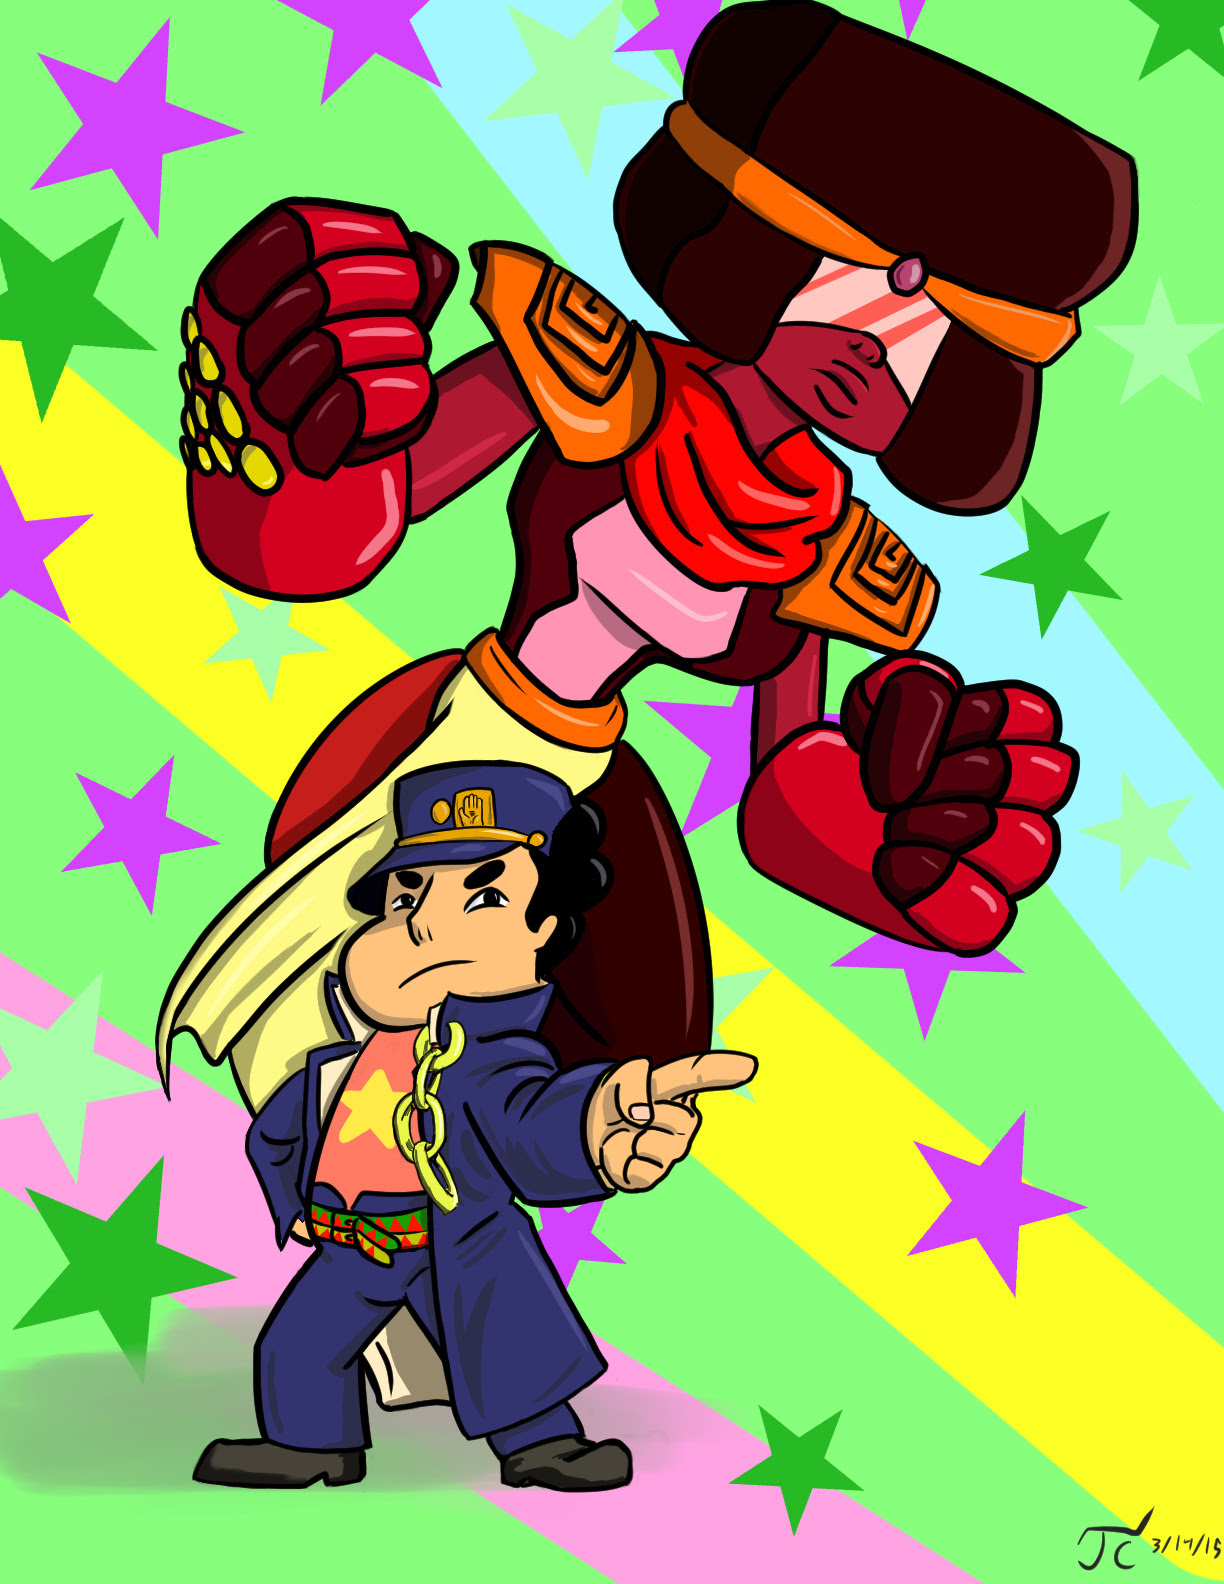 Something I've been working on the past few days for fun. Steven Universe and Garnet as Jotaro Kujo and Star Platinum.